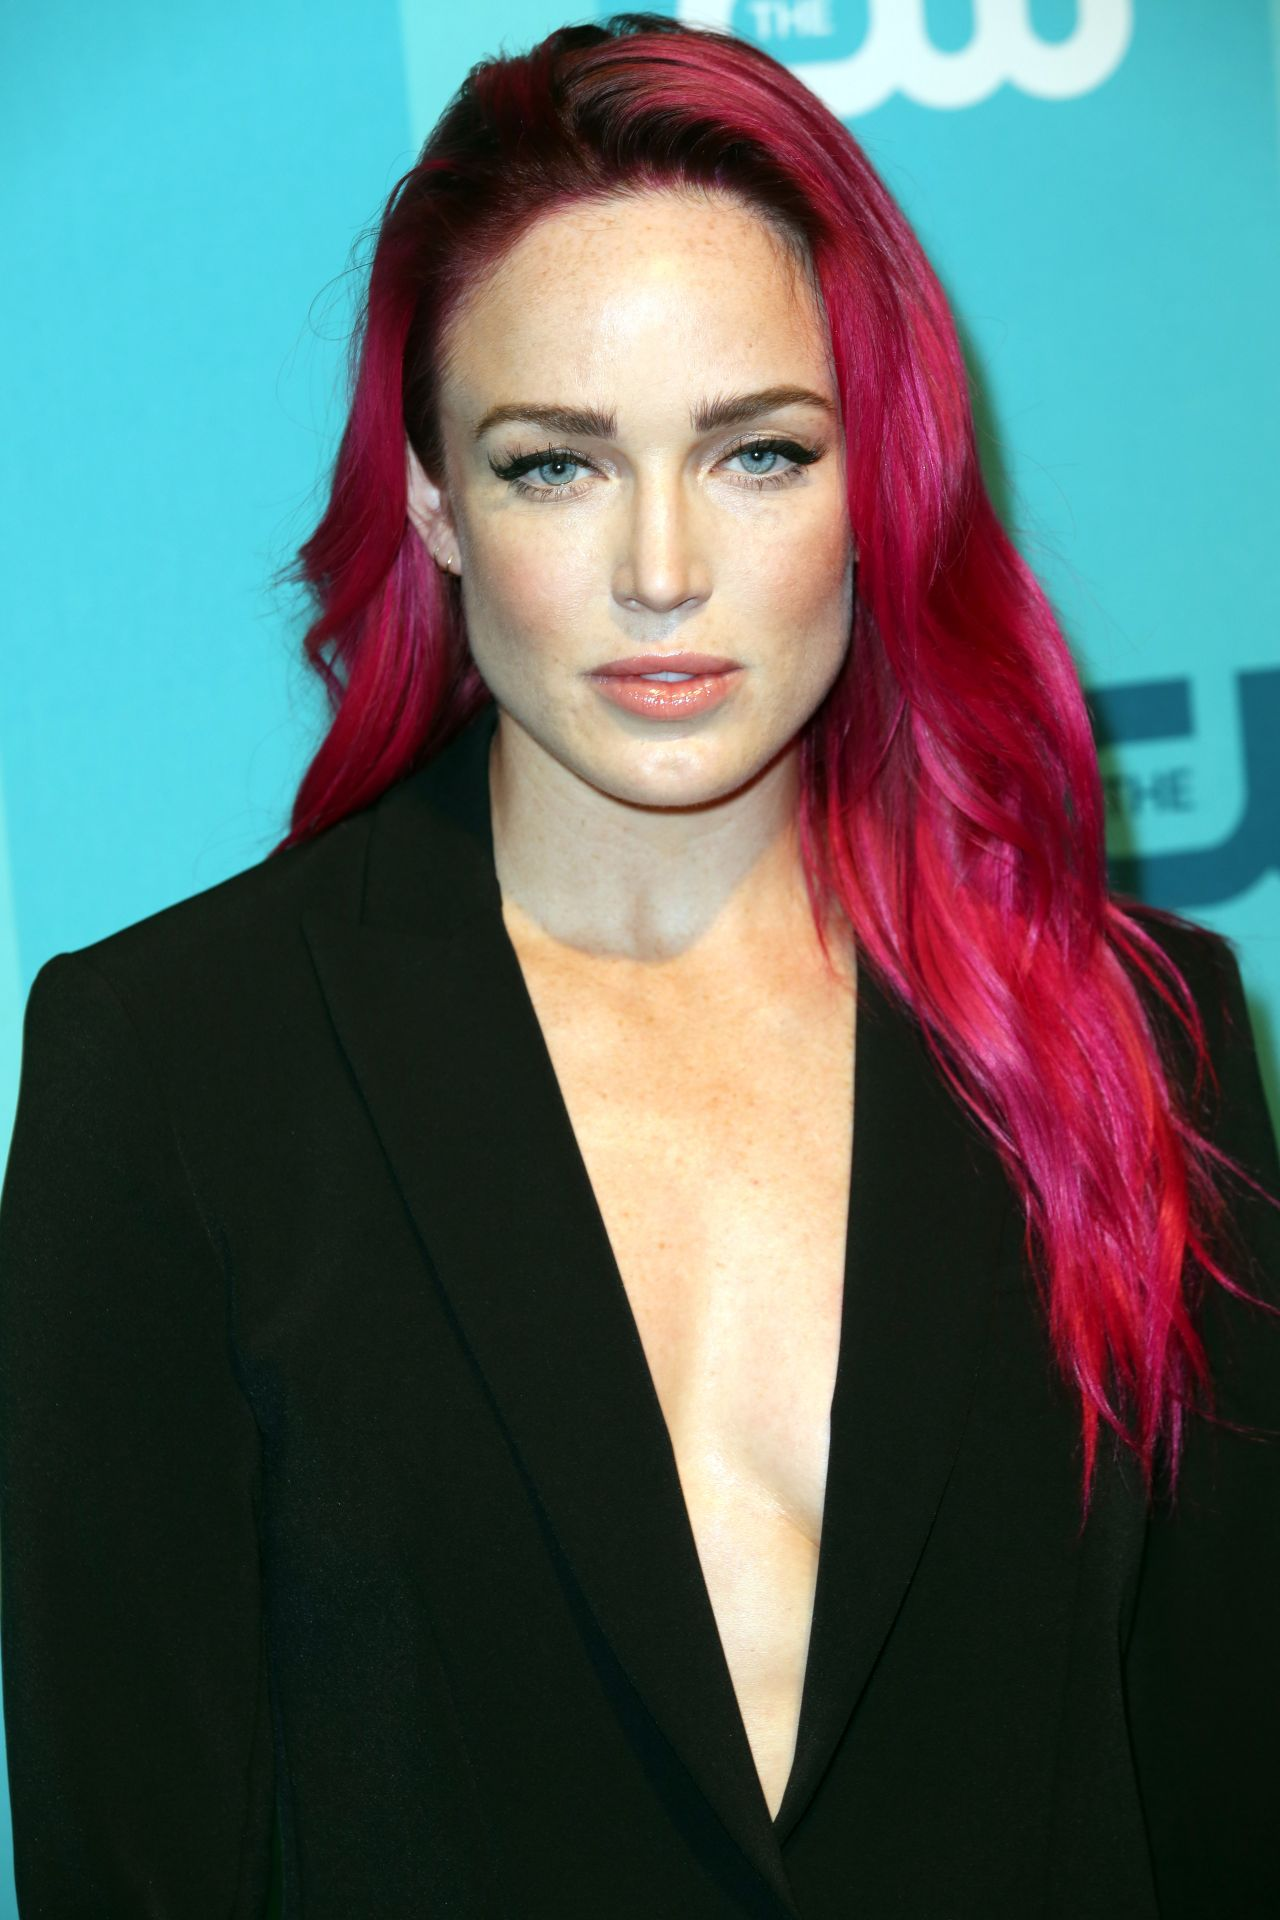 Fall Colors Wallpaper 1920x1080 Caity Lotz The Cw Network S Upfront In New York City 05